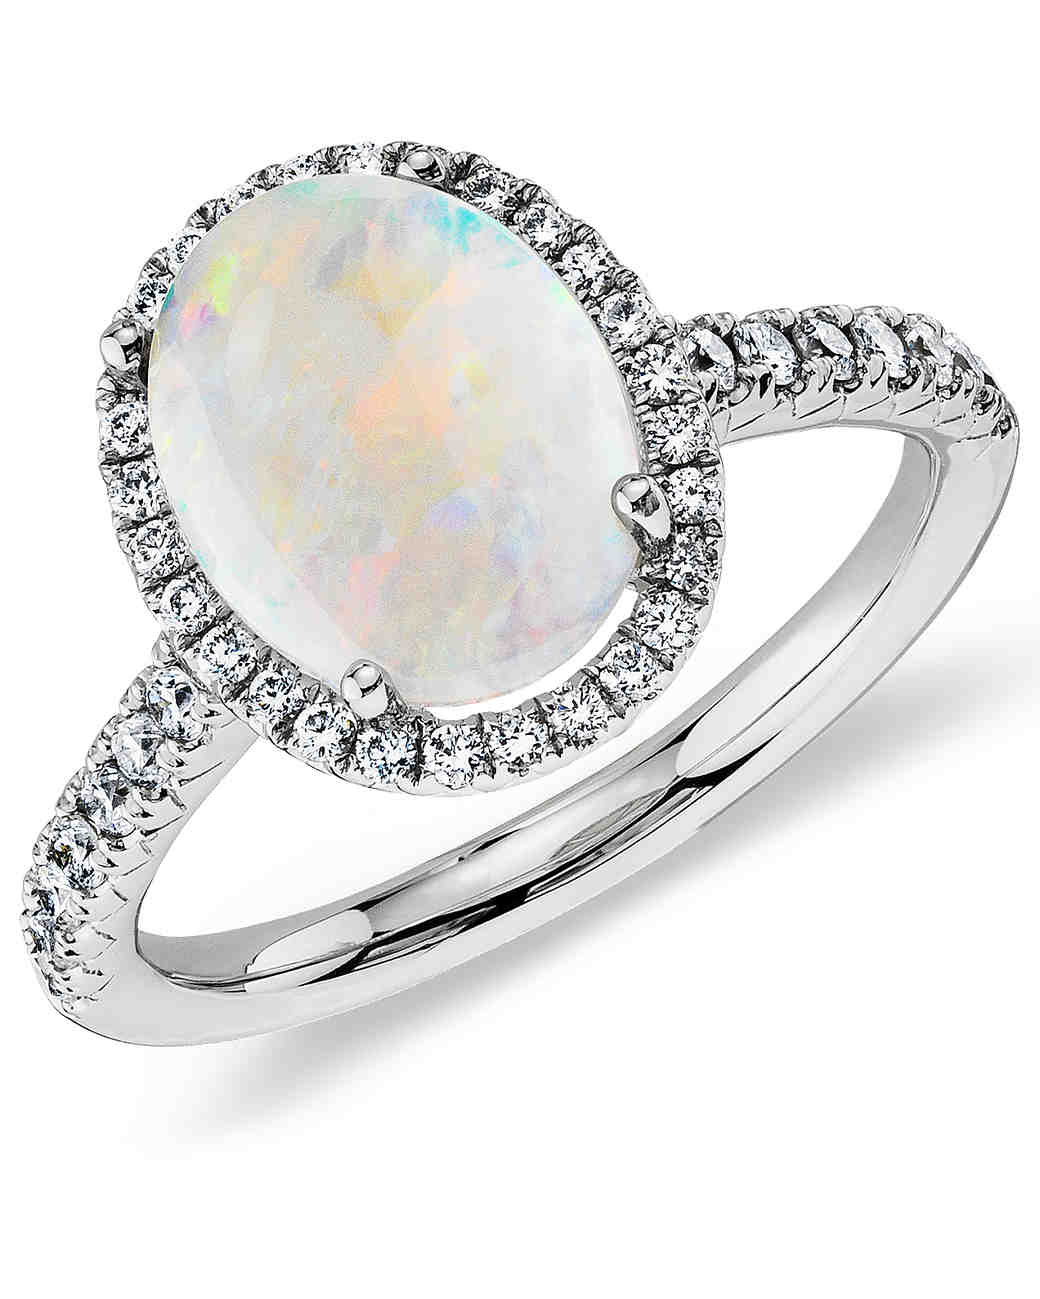 opal engagement rings that are oh so dreamy martha stewart weddings - Opal Wedding Ring